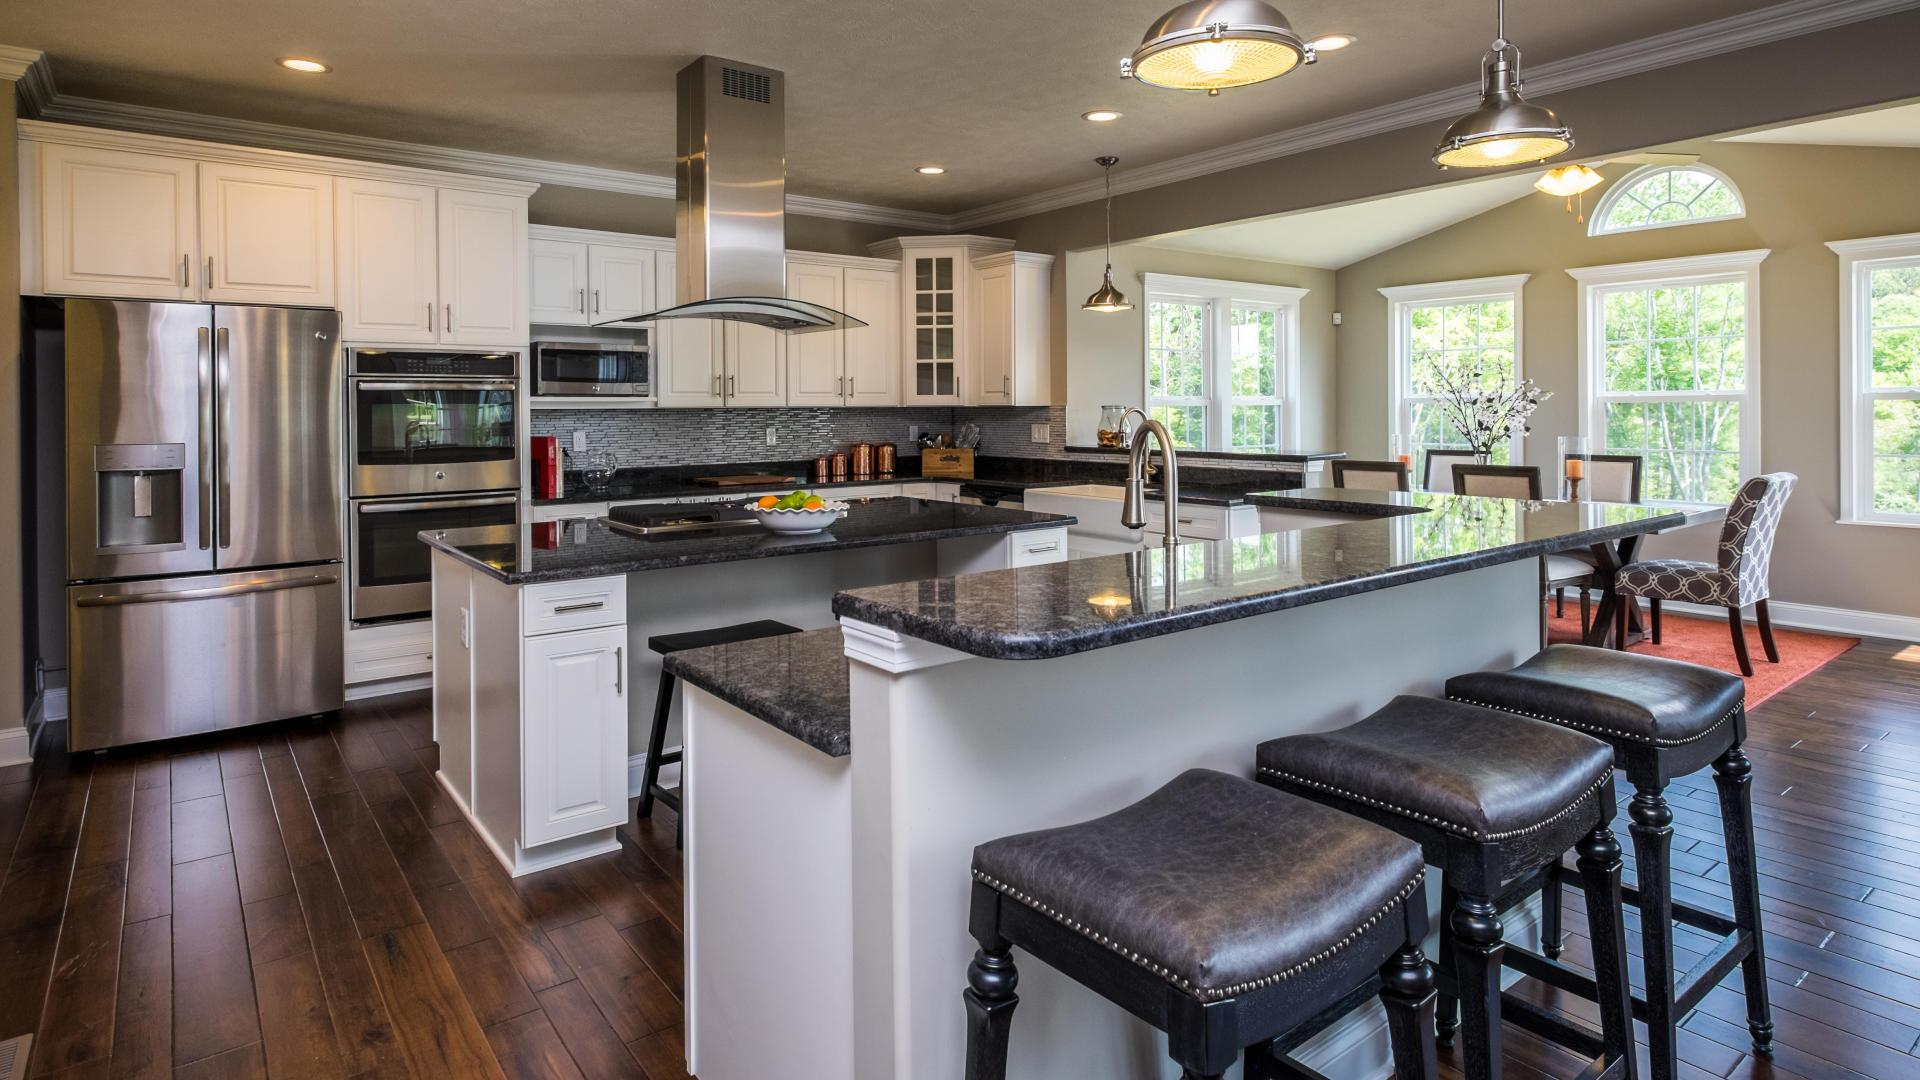 Kitchen featured in the Eisenhower By Maronda Homes in Pittsburgh, PA